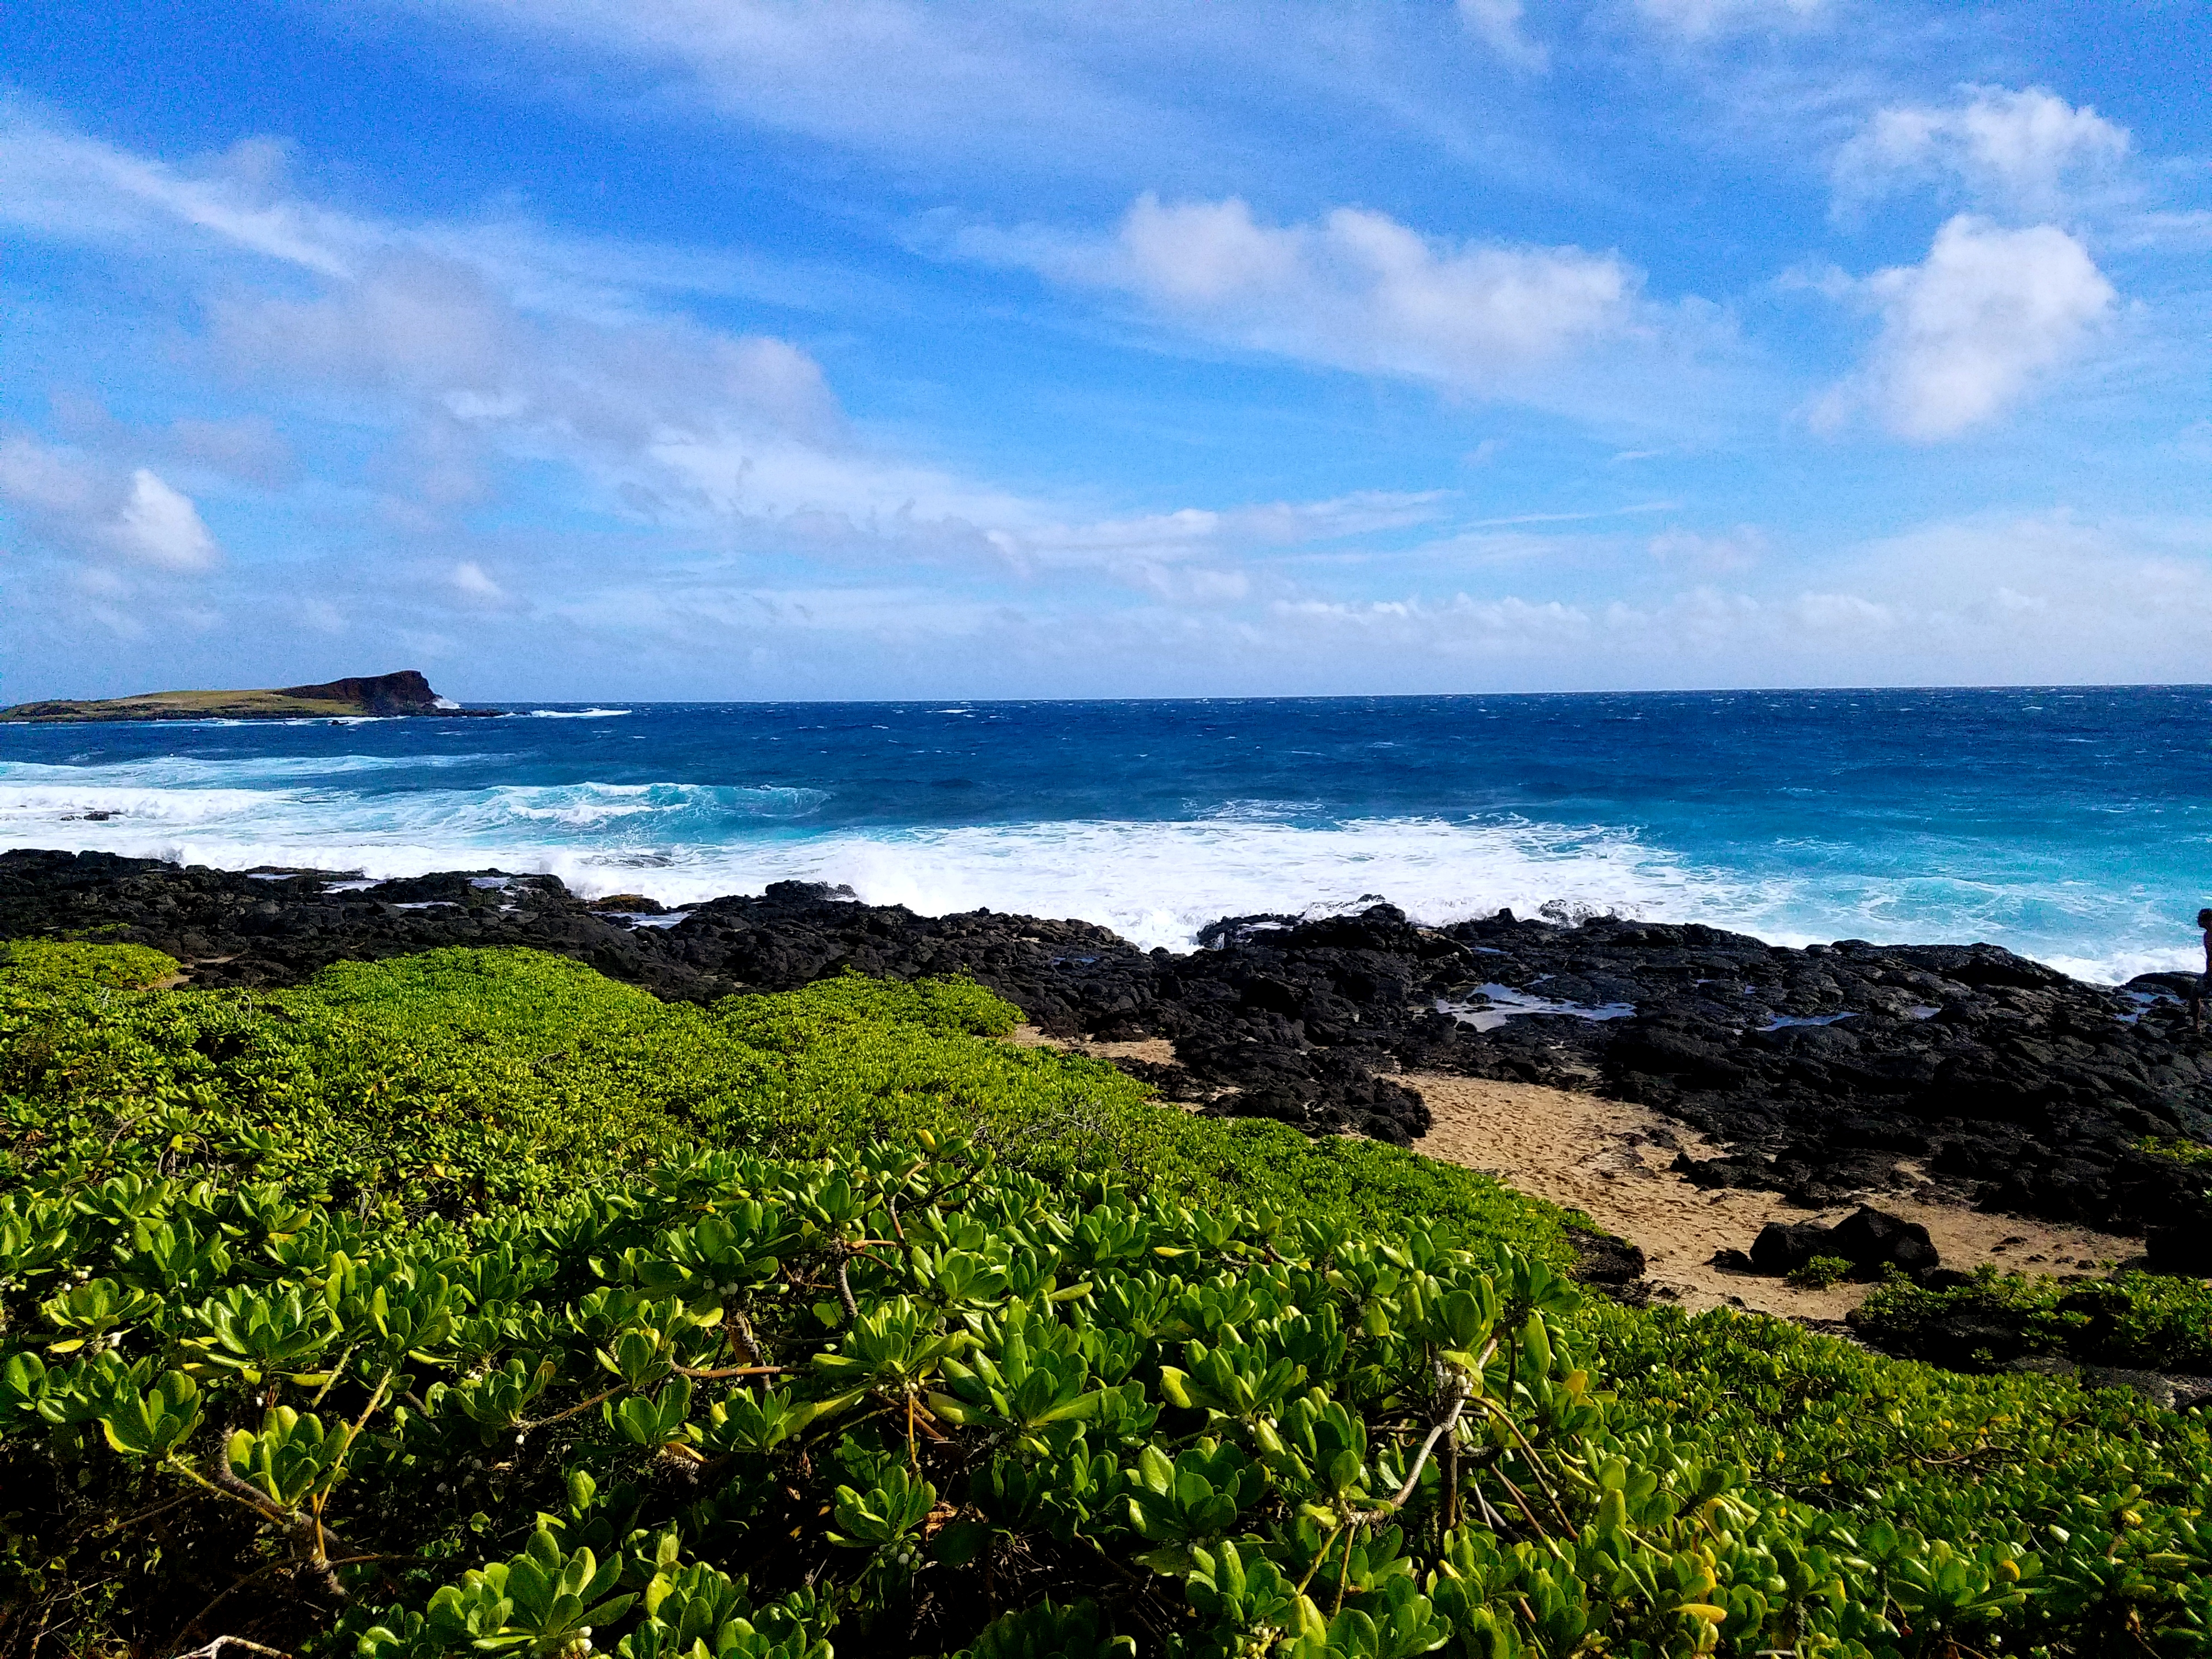 The Best and Cheapest Time to Go to Hawaii